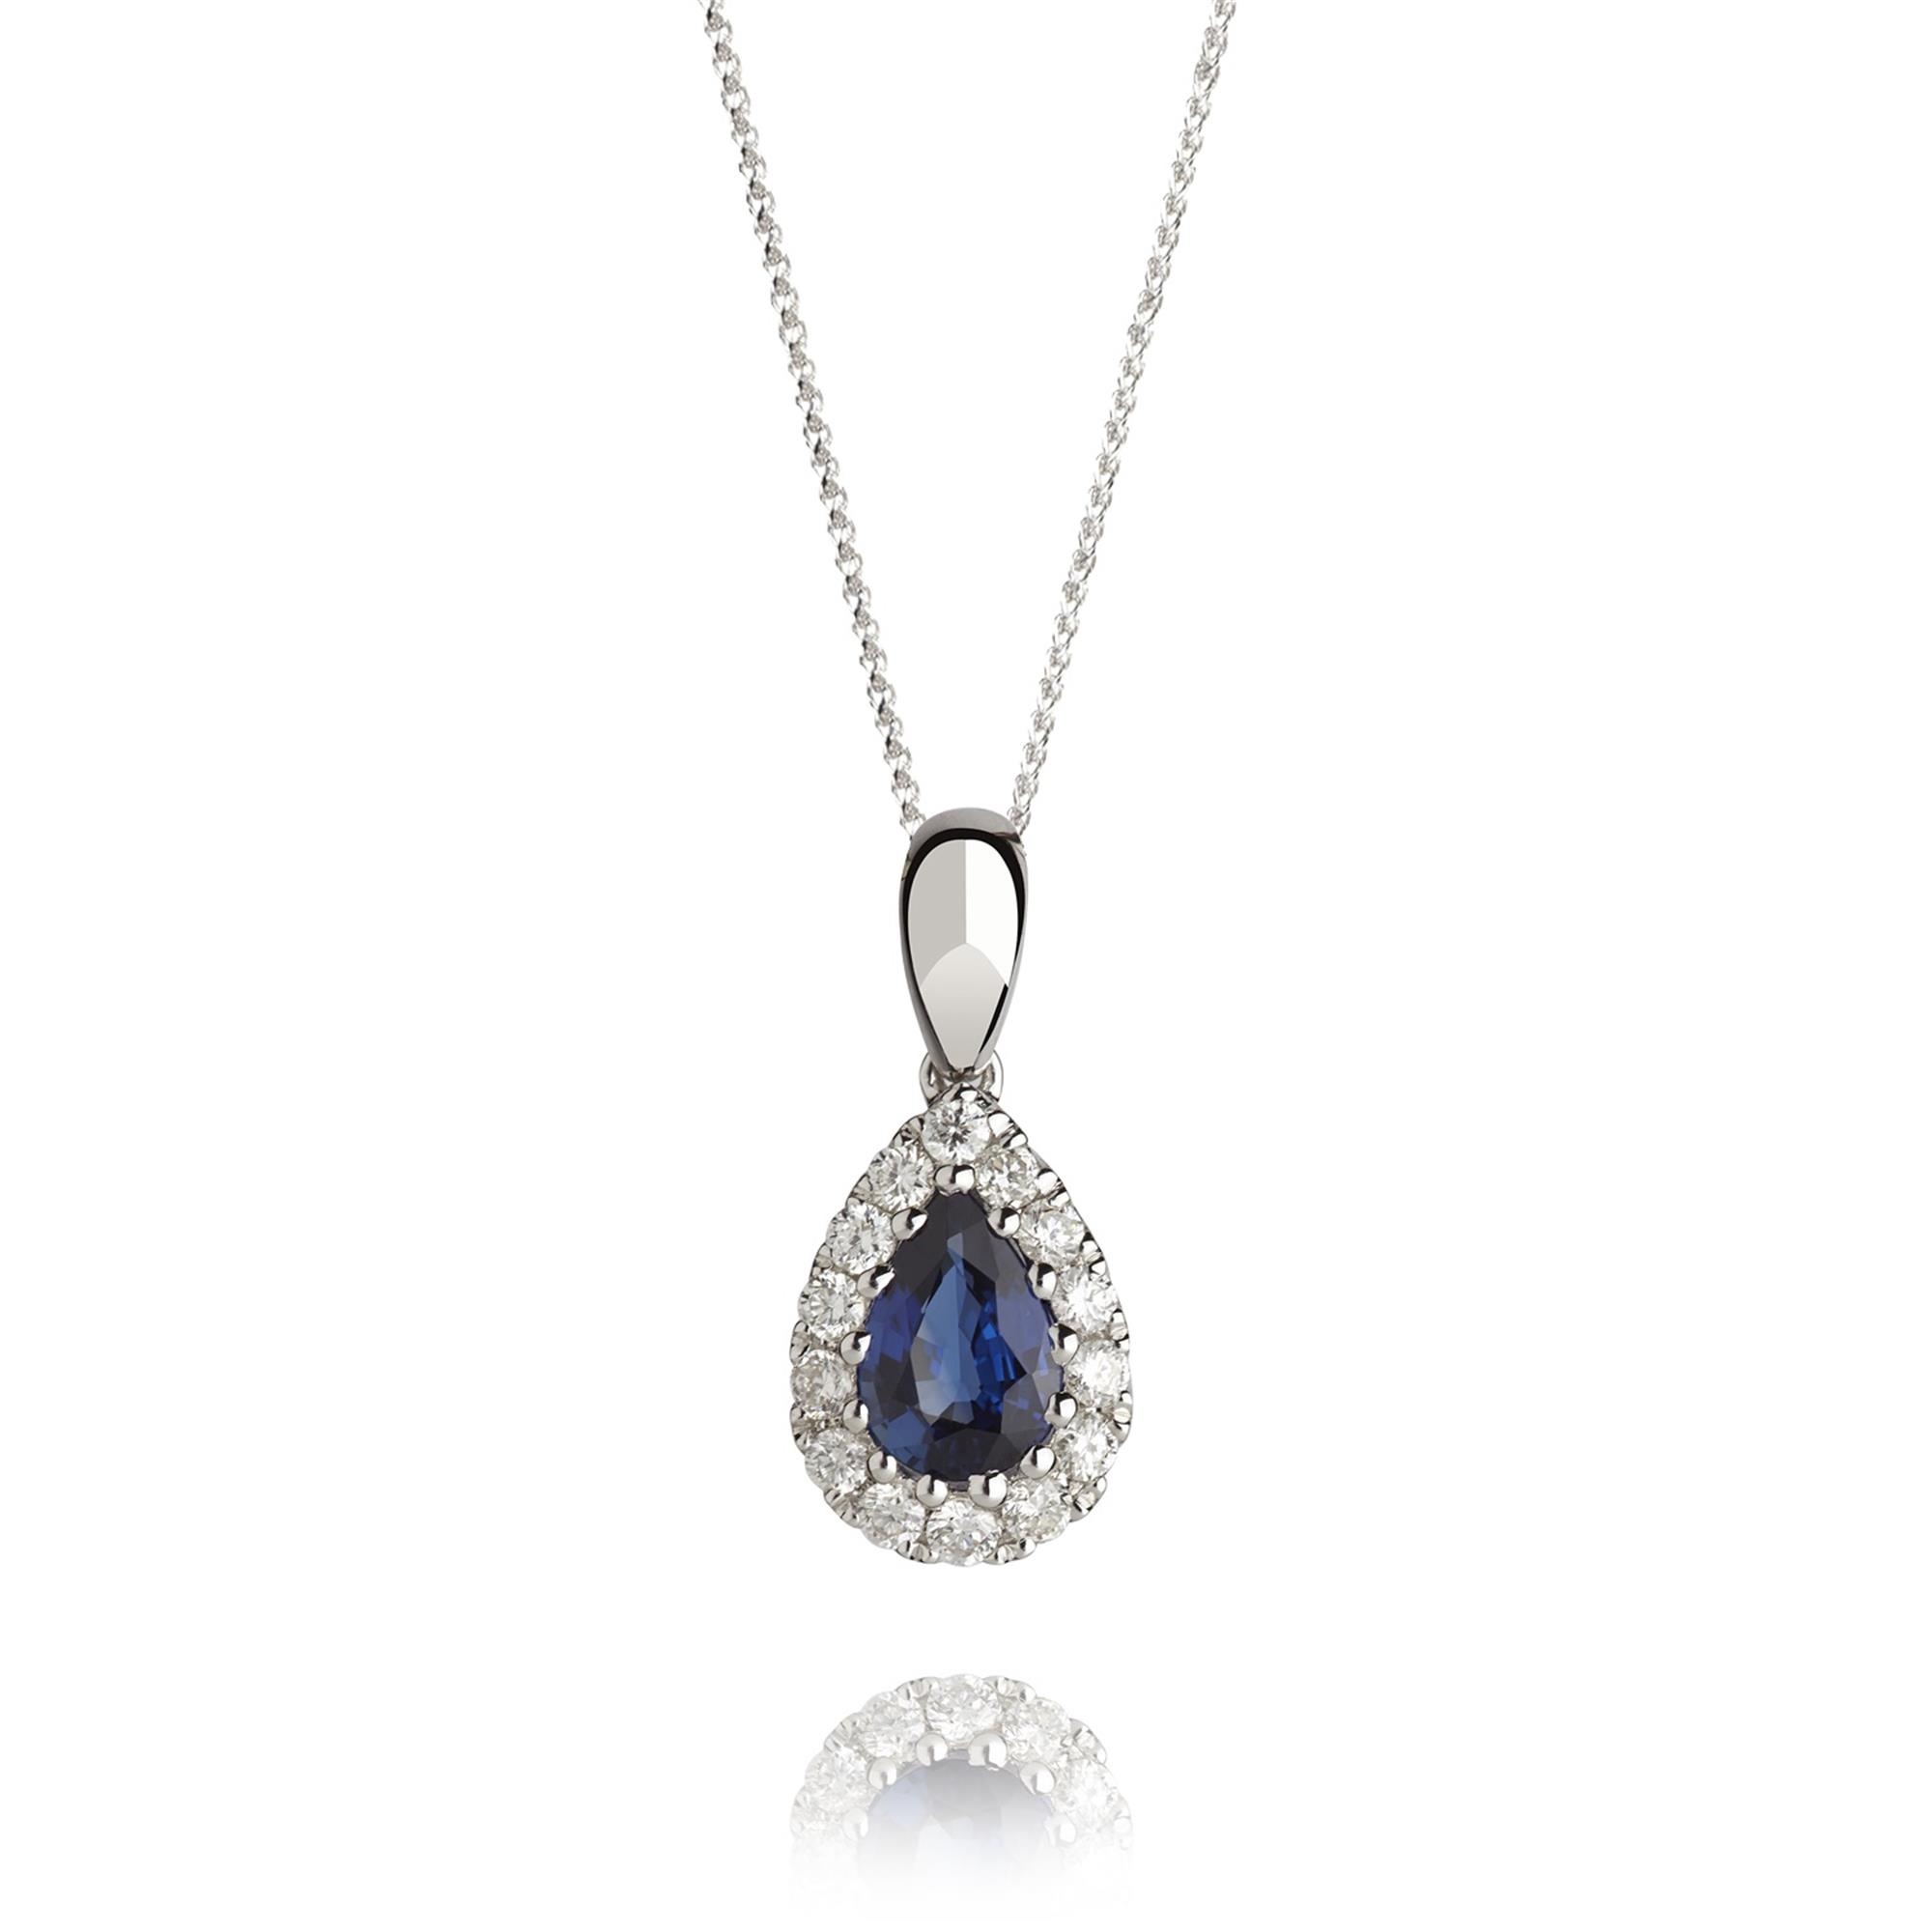 8f0ddef62 18ct White Gold Pear Shape Sapphire and Diamond Pendant | Pravins ...